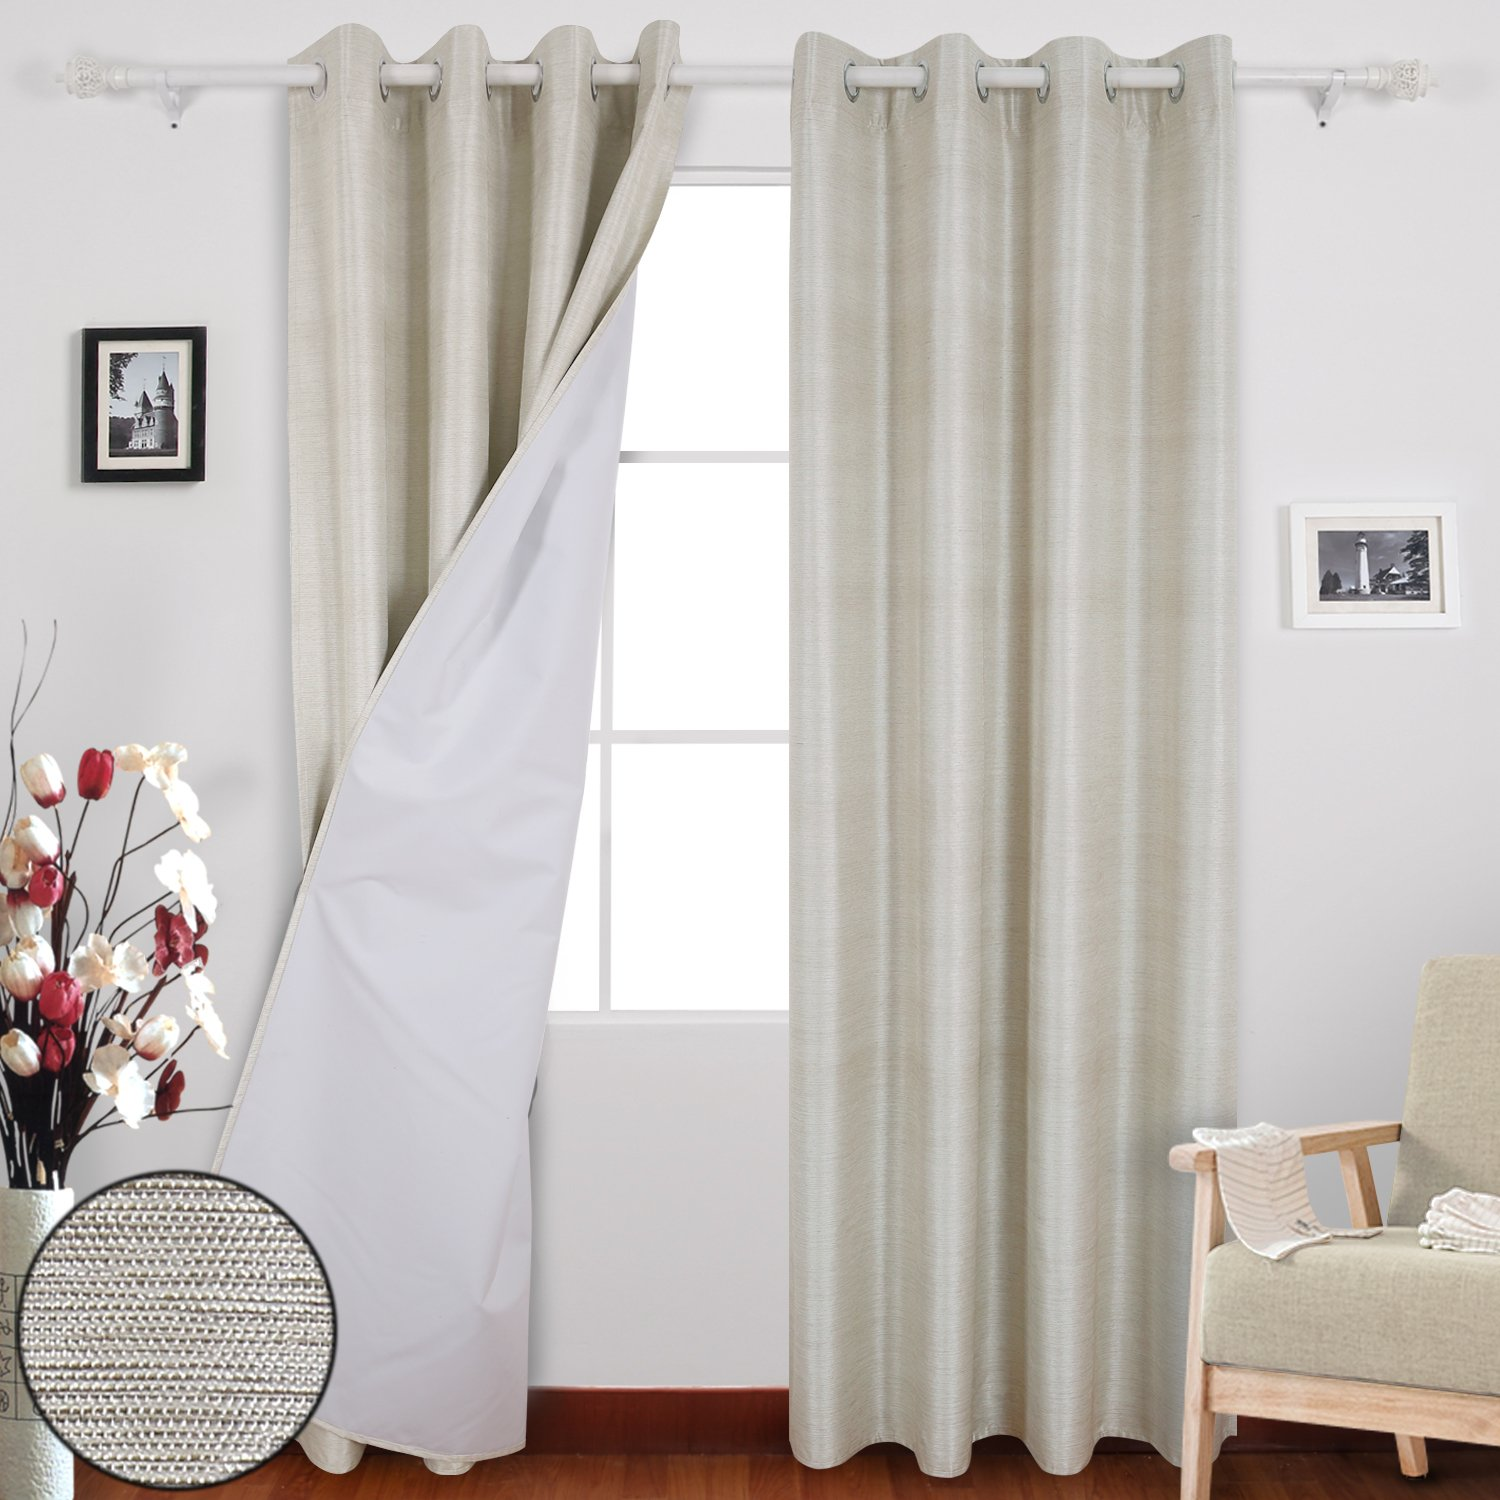 Deconovo Decorative Textured Stripe Thermal Insulated Grommet Blackout Curtains With Coating Back Layer for Bedroom Beige